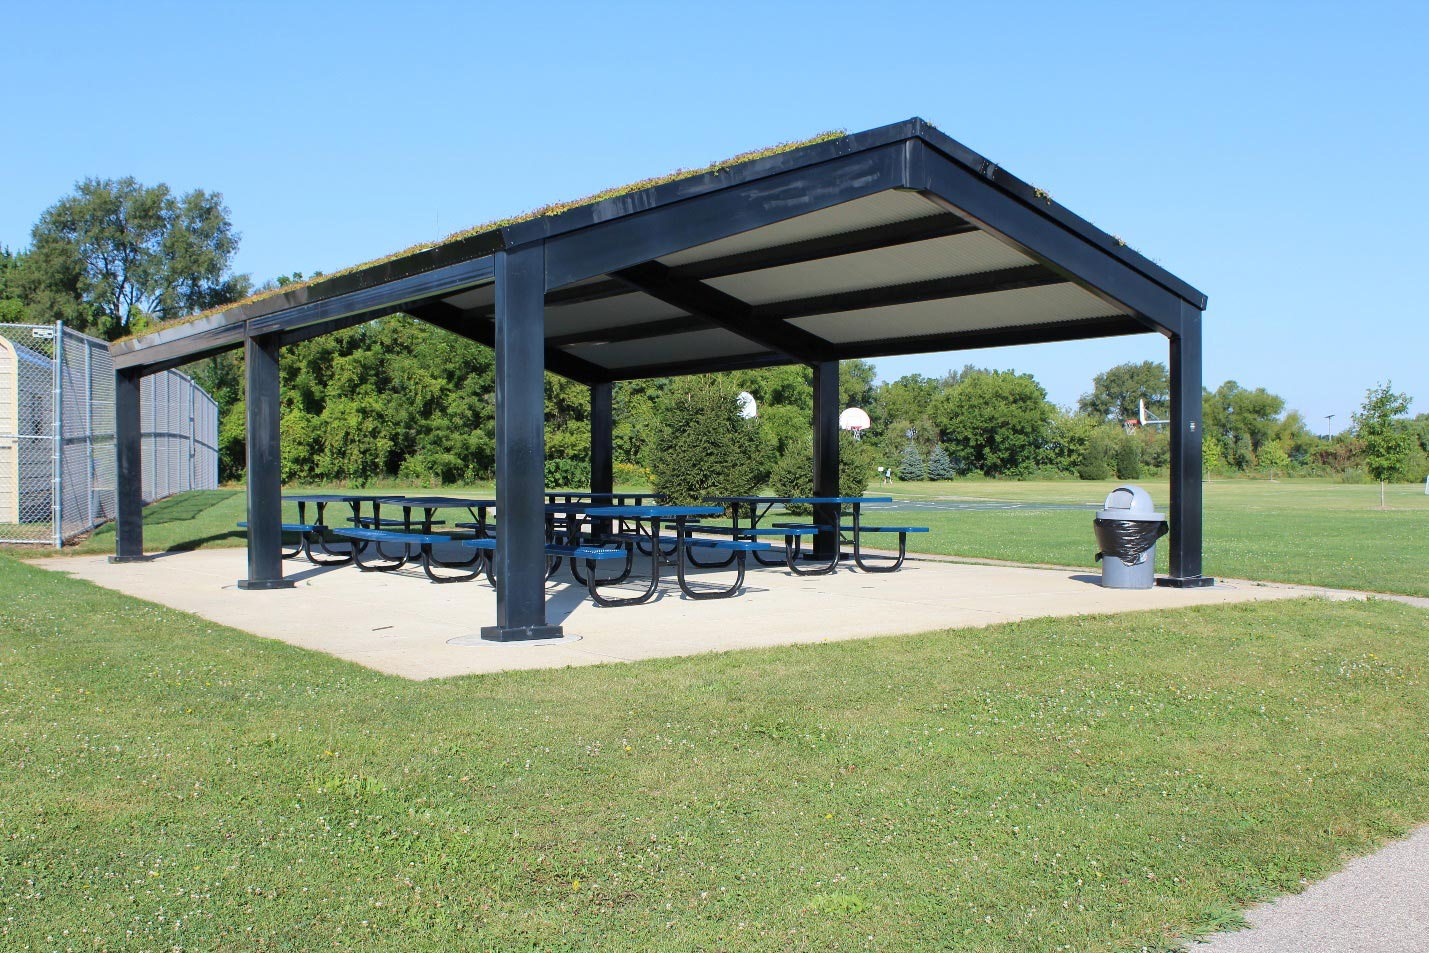 Chamberlain Park Picnic Shelter with Live Roof Shelter Located behind the Pool